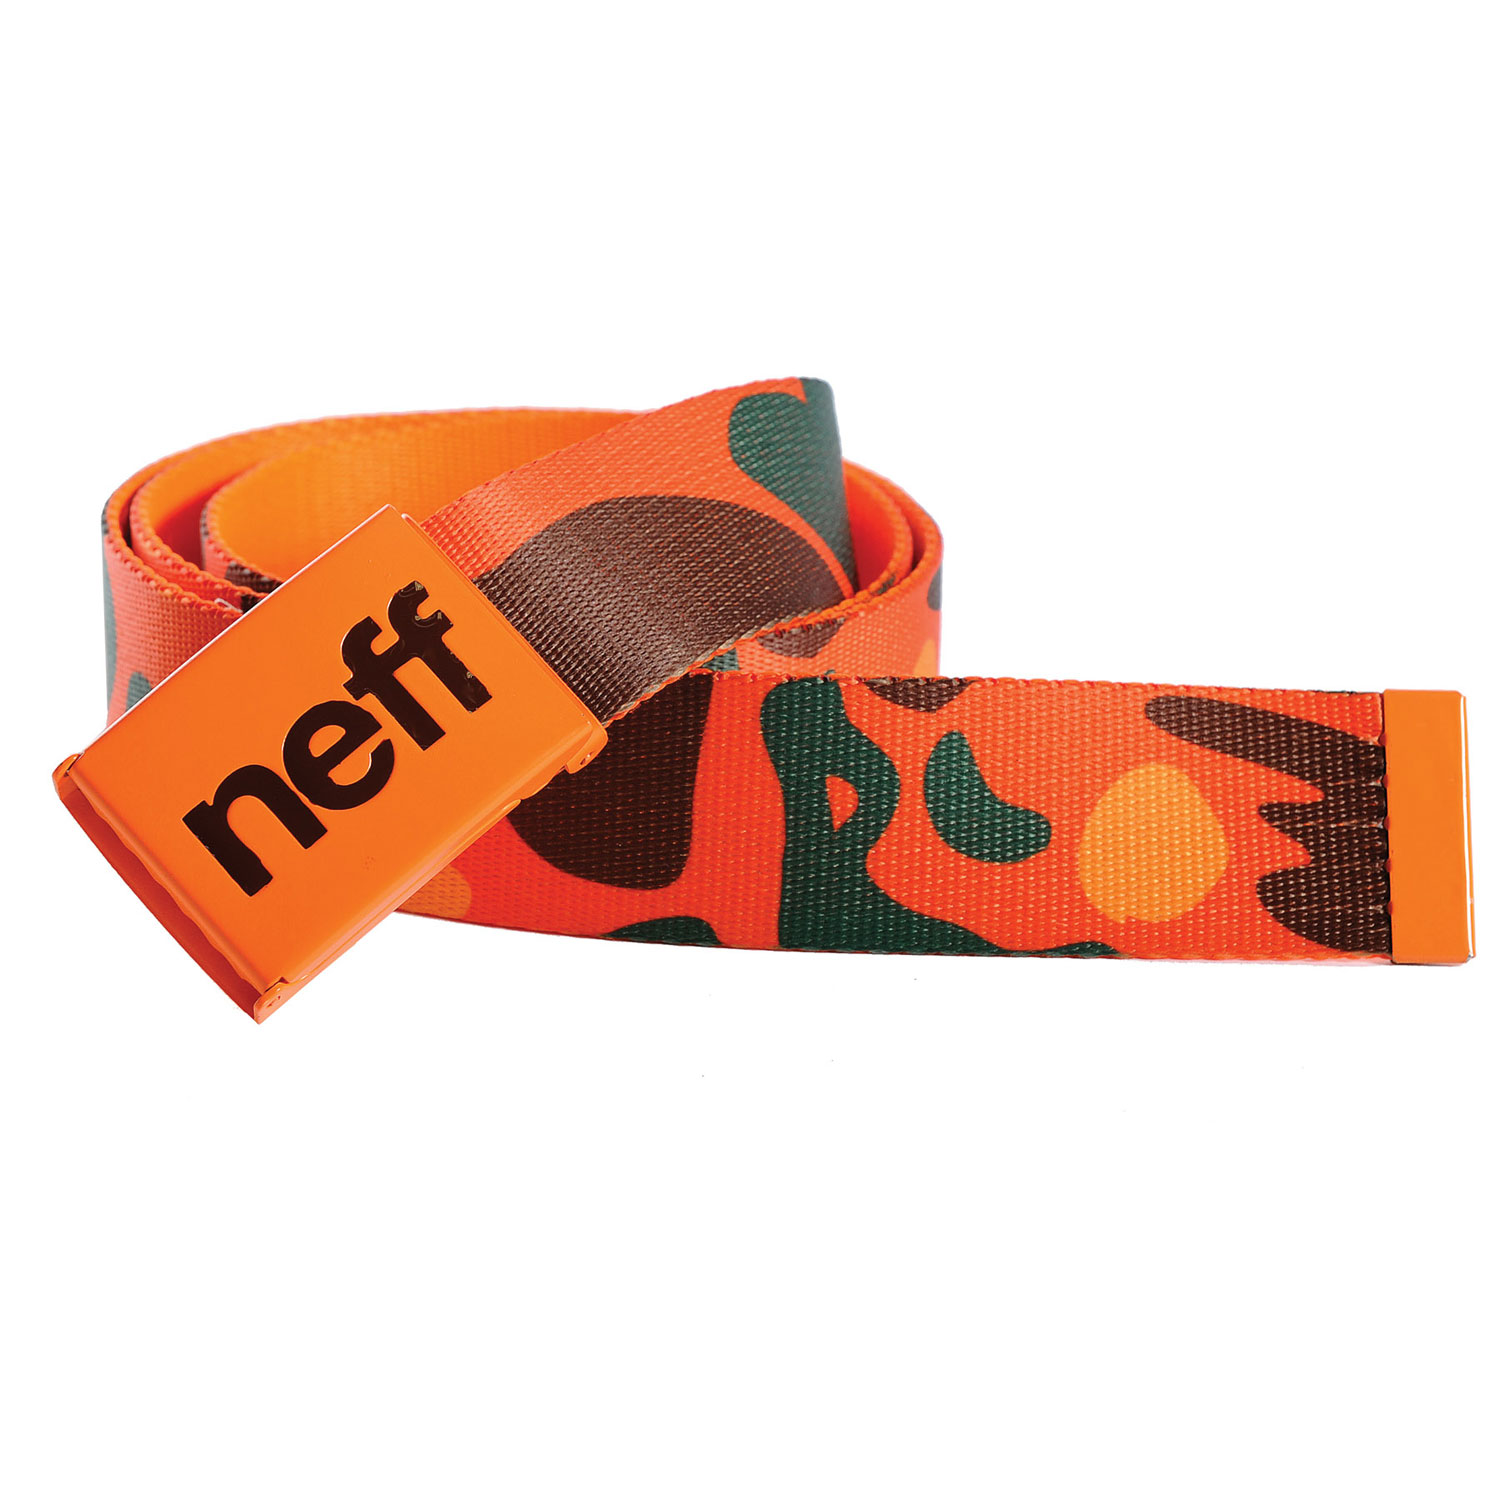 Skateboard Key Features of the Neff Sucker Camo Belt: 100% Polyester Adjustable - $12.95